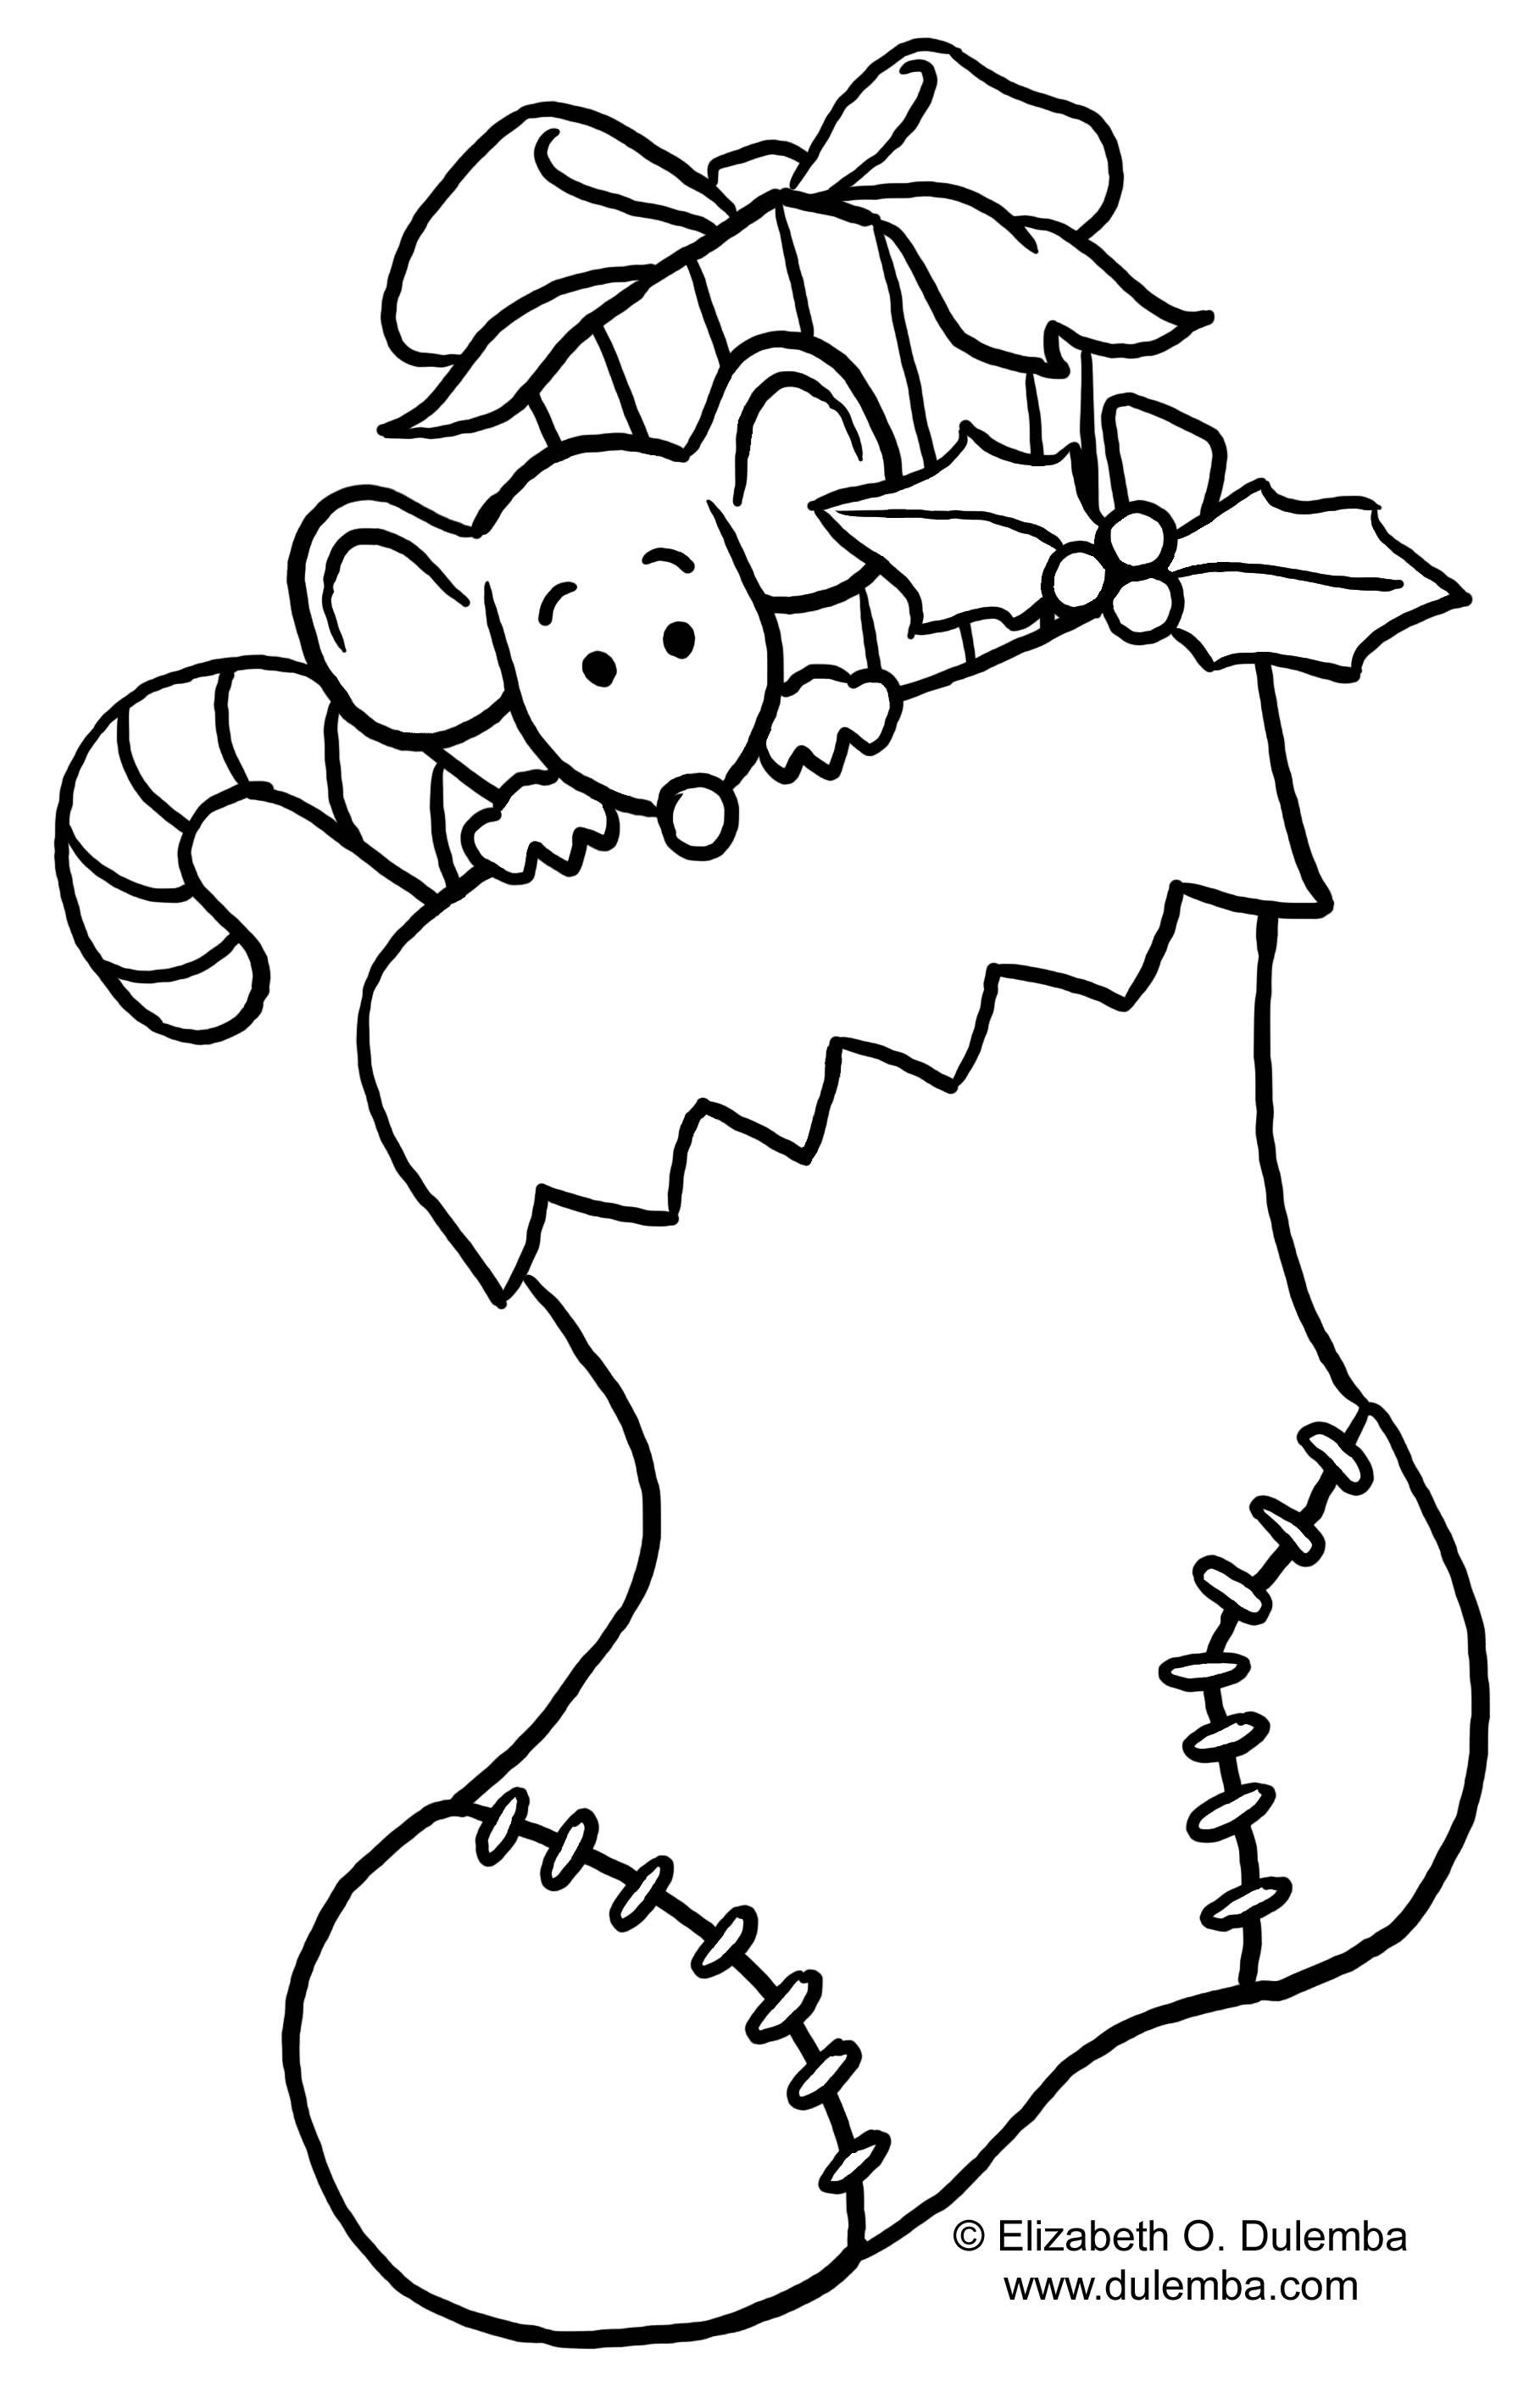 net coloring pages for kids - photo#17